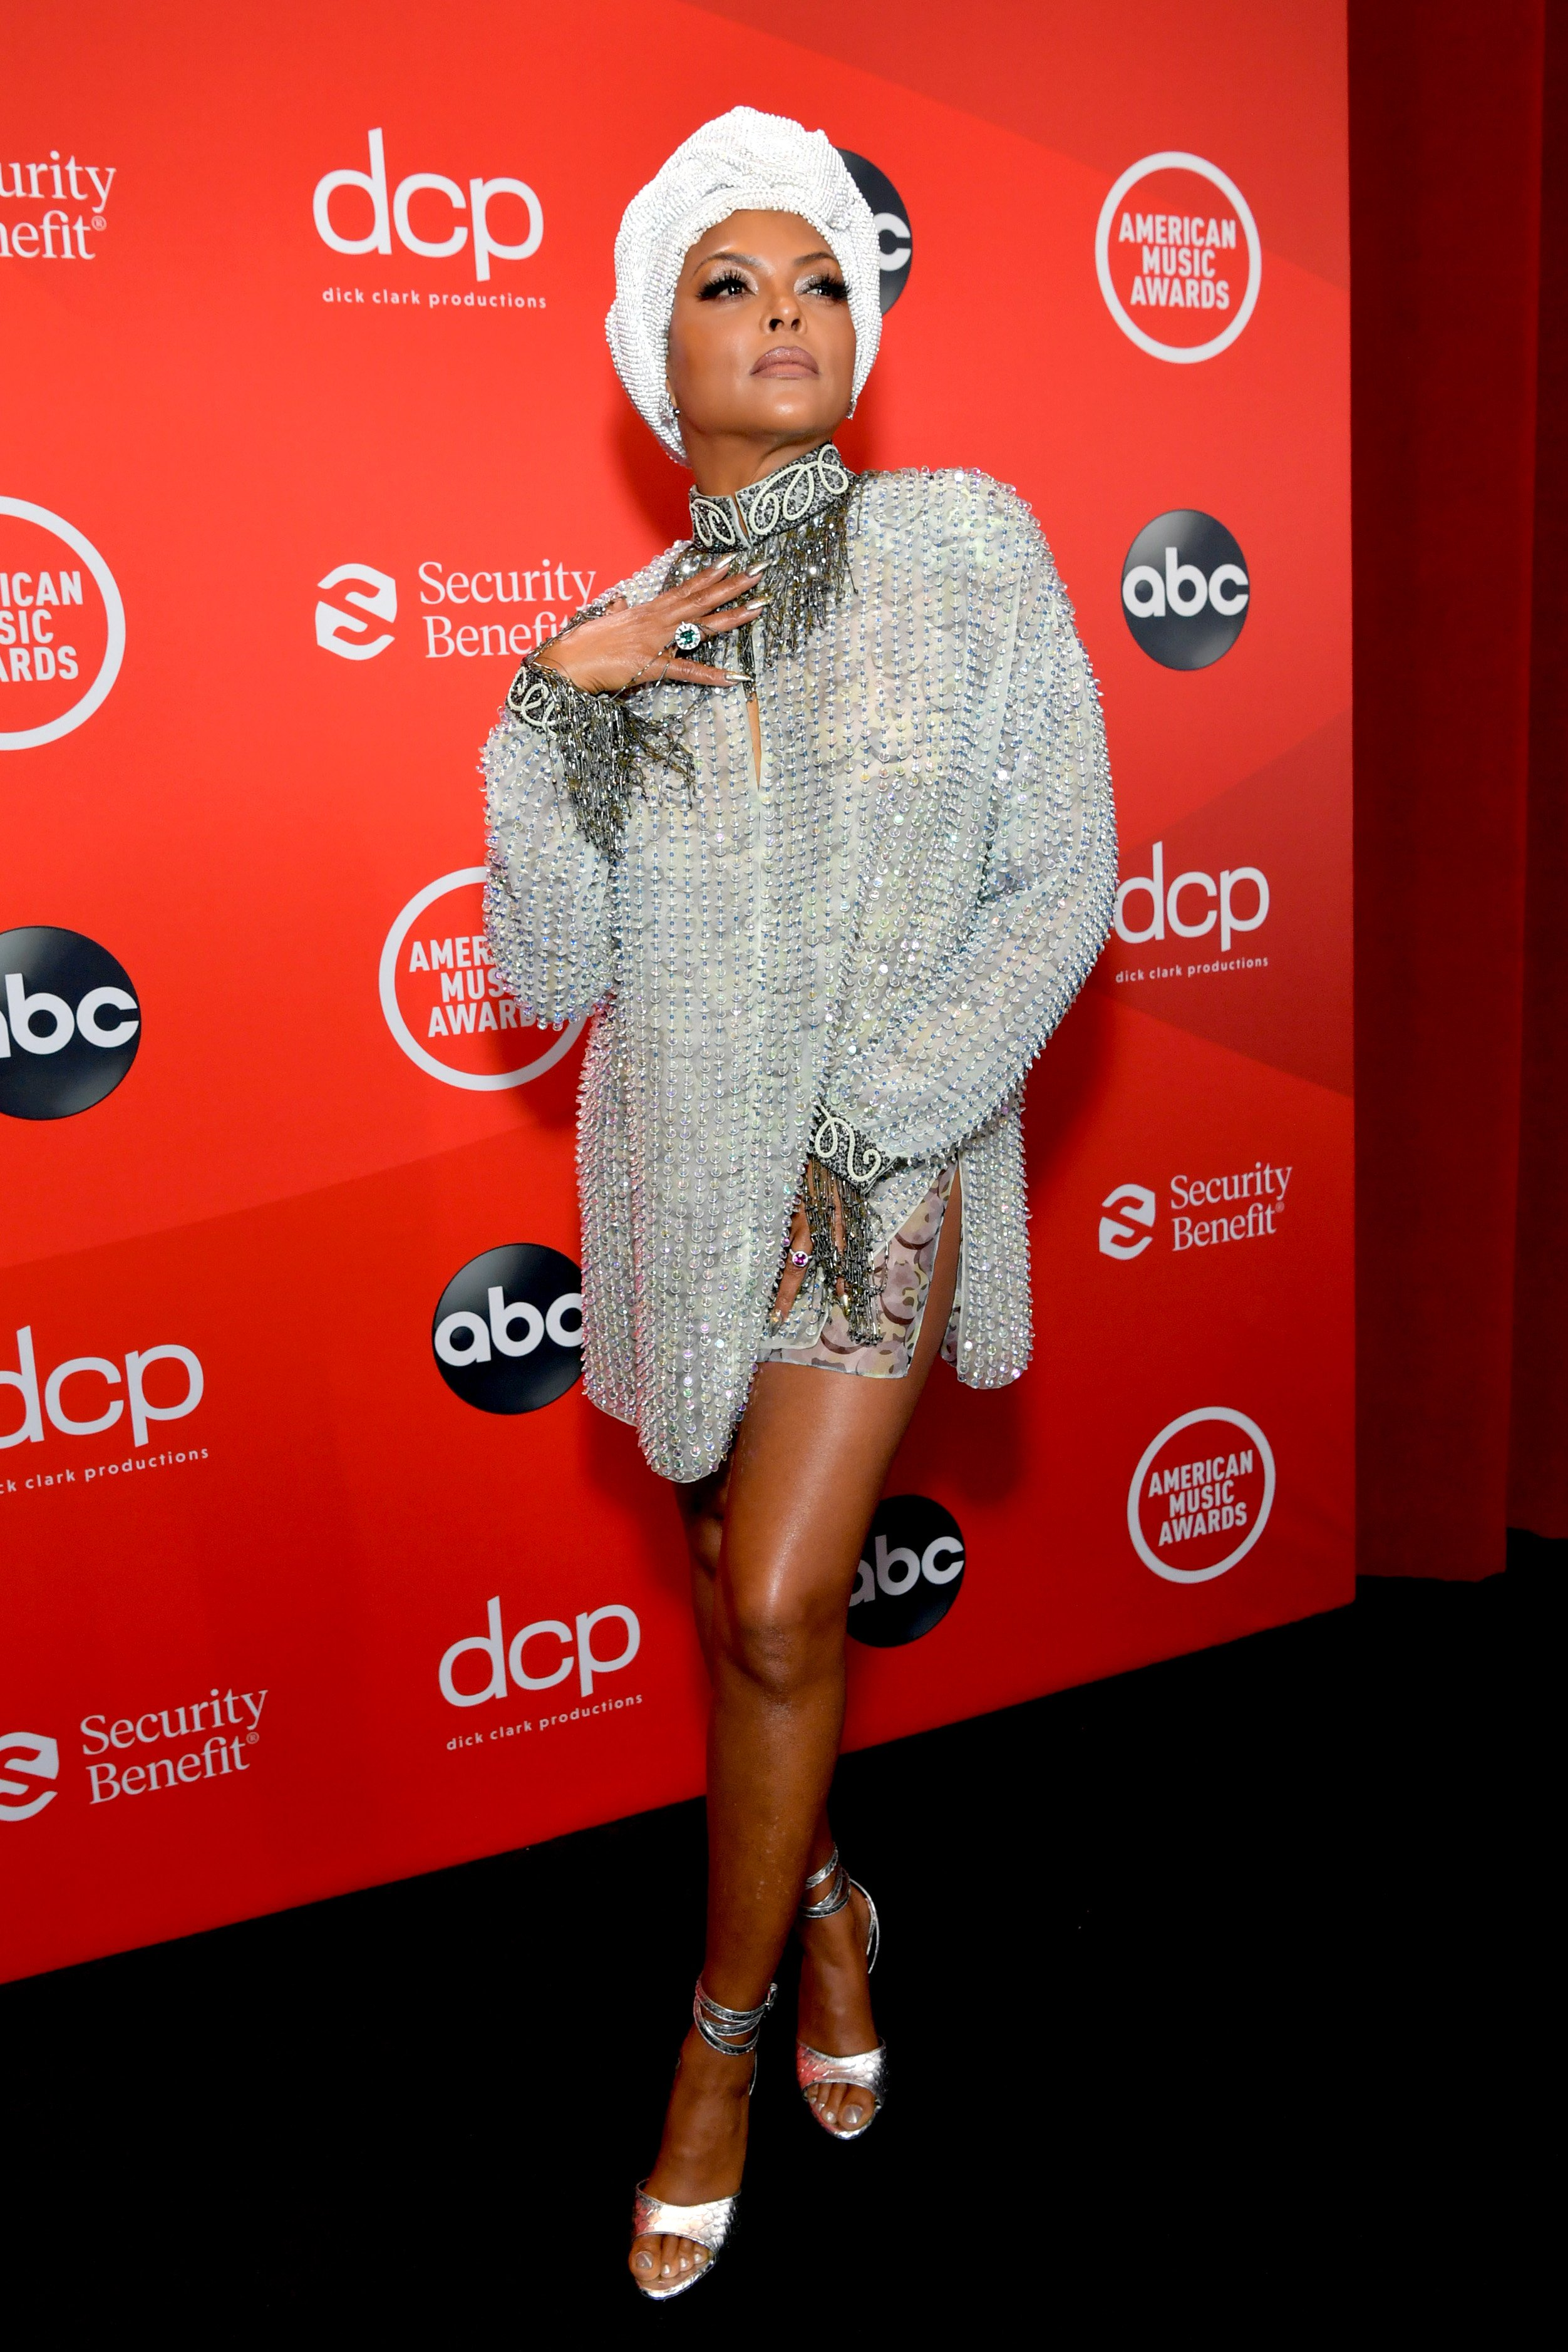 Taraji P. Henson at the 2020 American Music Awards in Los Angeles, California | Source: Getty Images